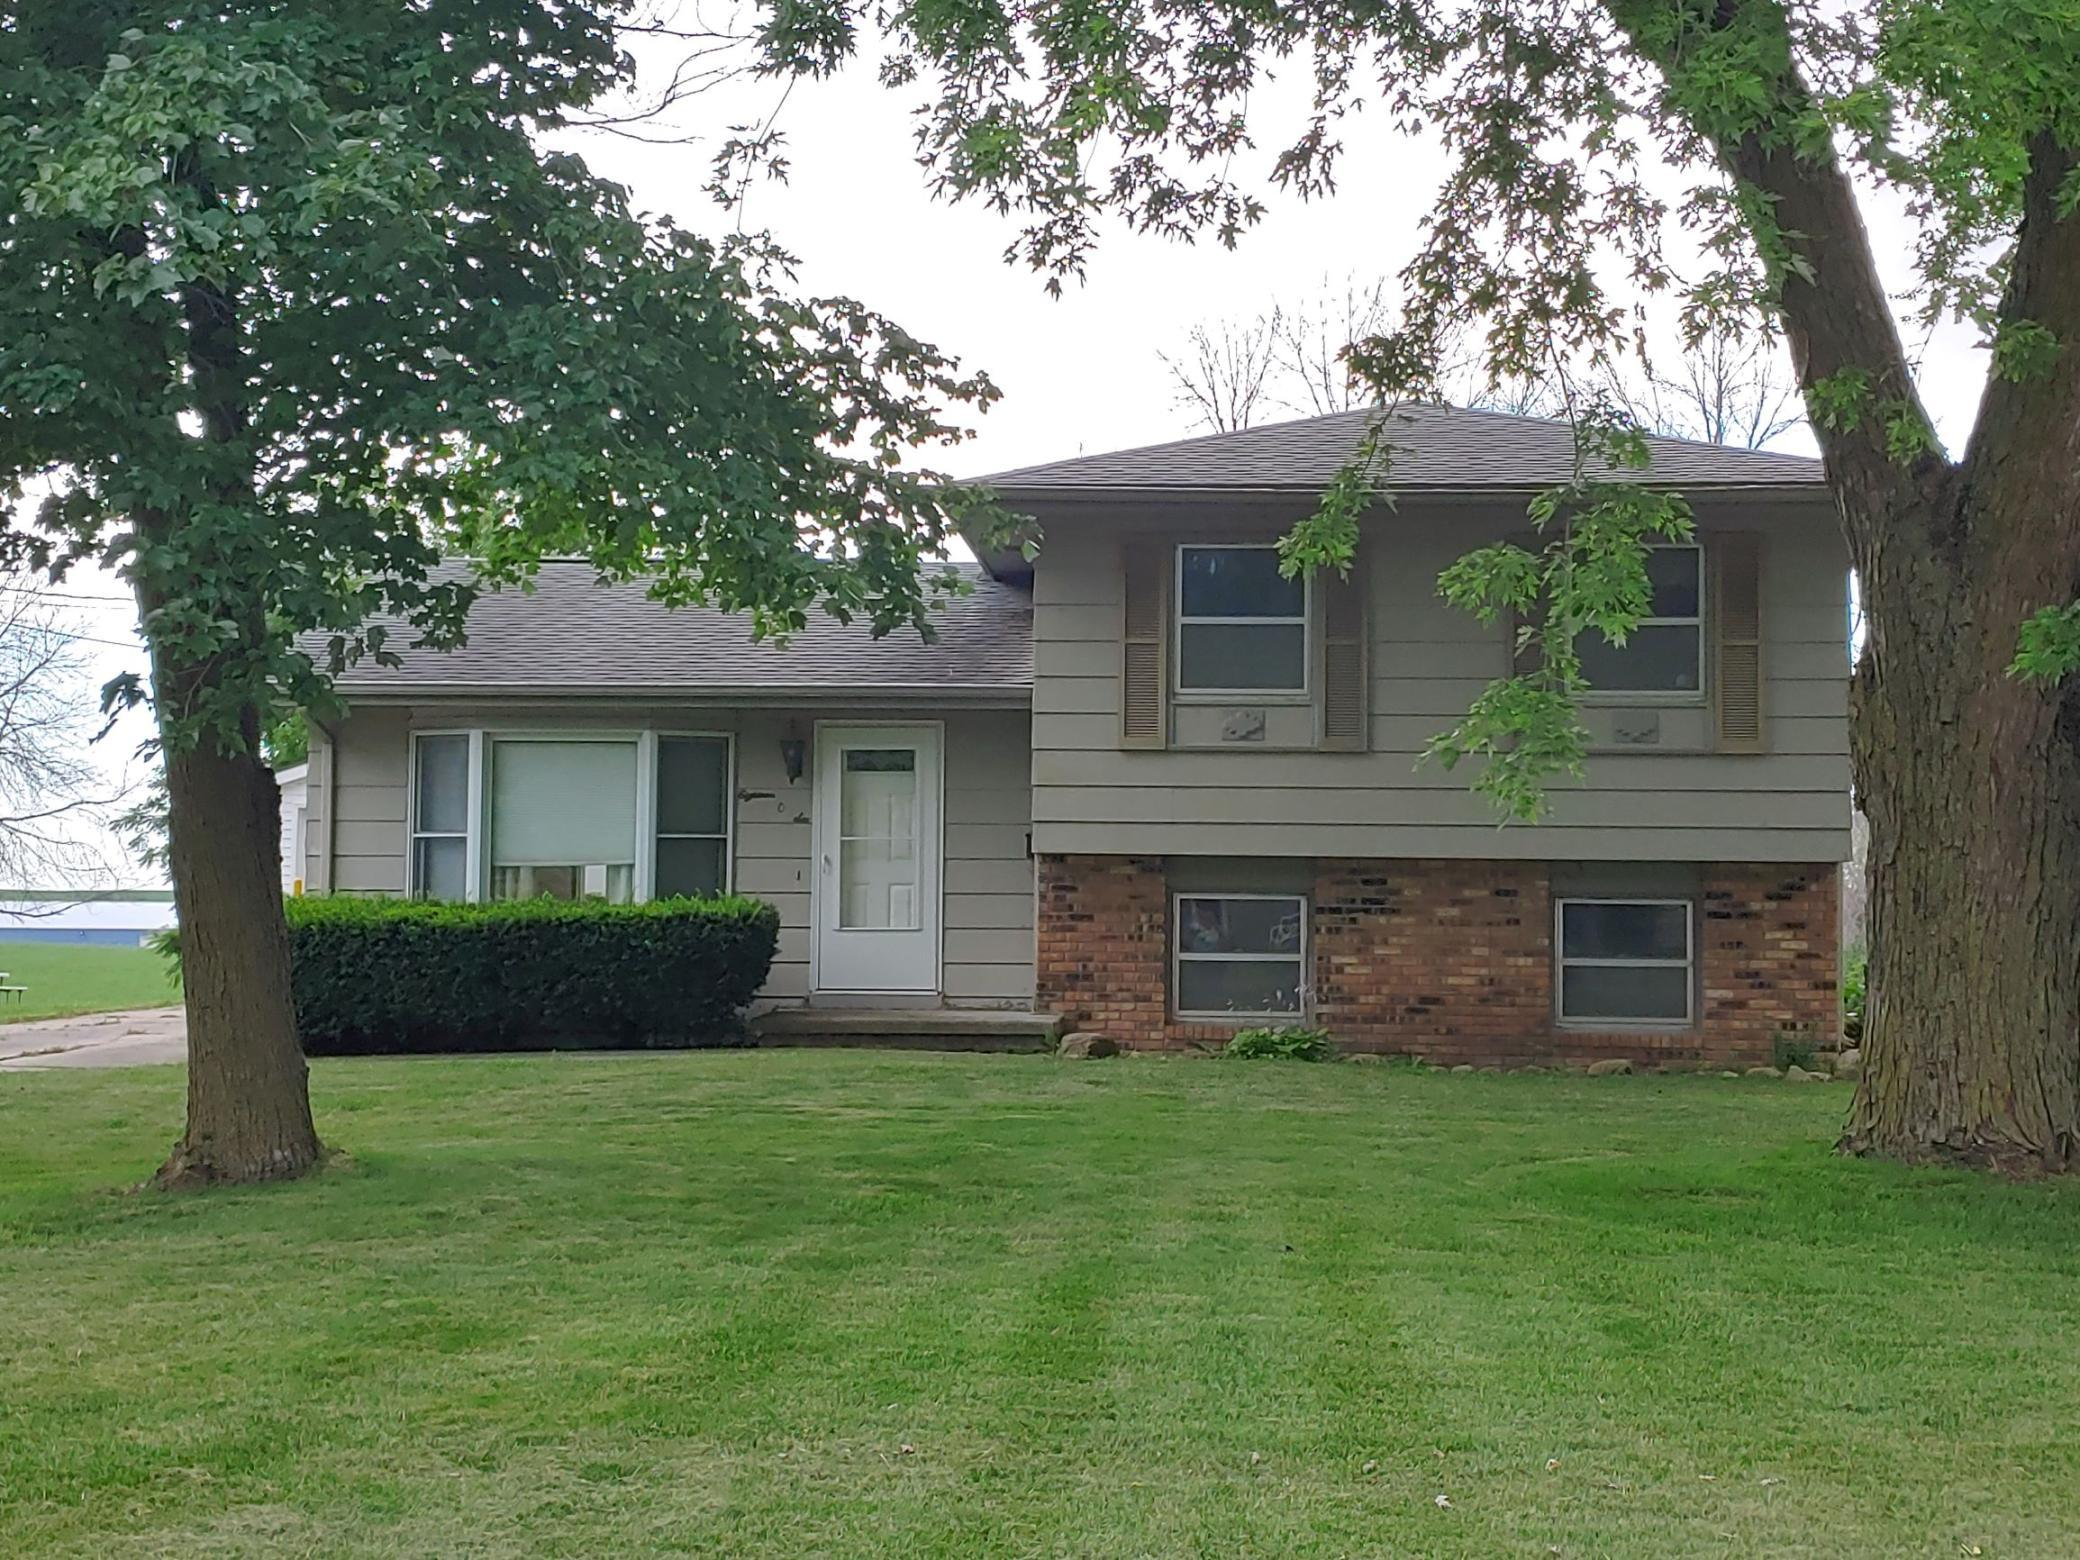 1806 3rd, Grinnell, Iowa 50112-2101, 3 Bedrooms Bedrooms, ,1 BathroomBathrooms,Single Family,For Sale,3rd,5488605